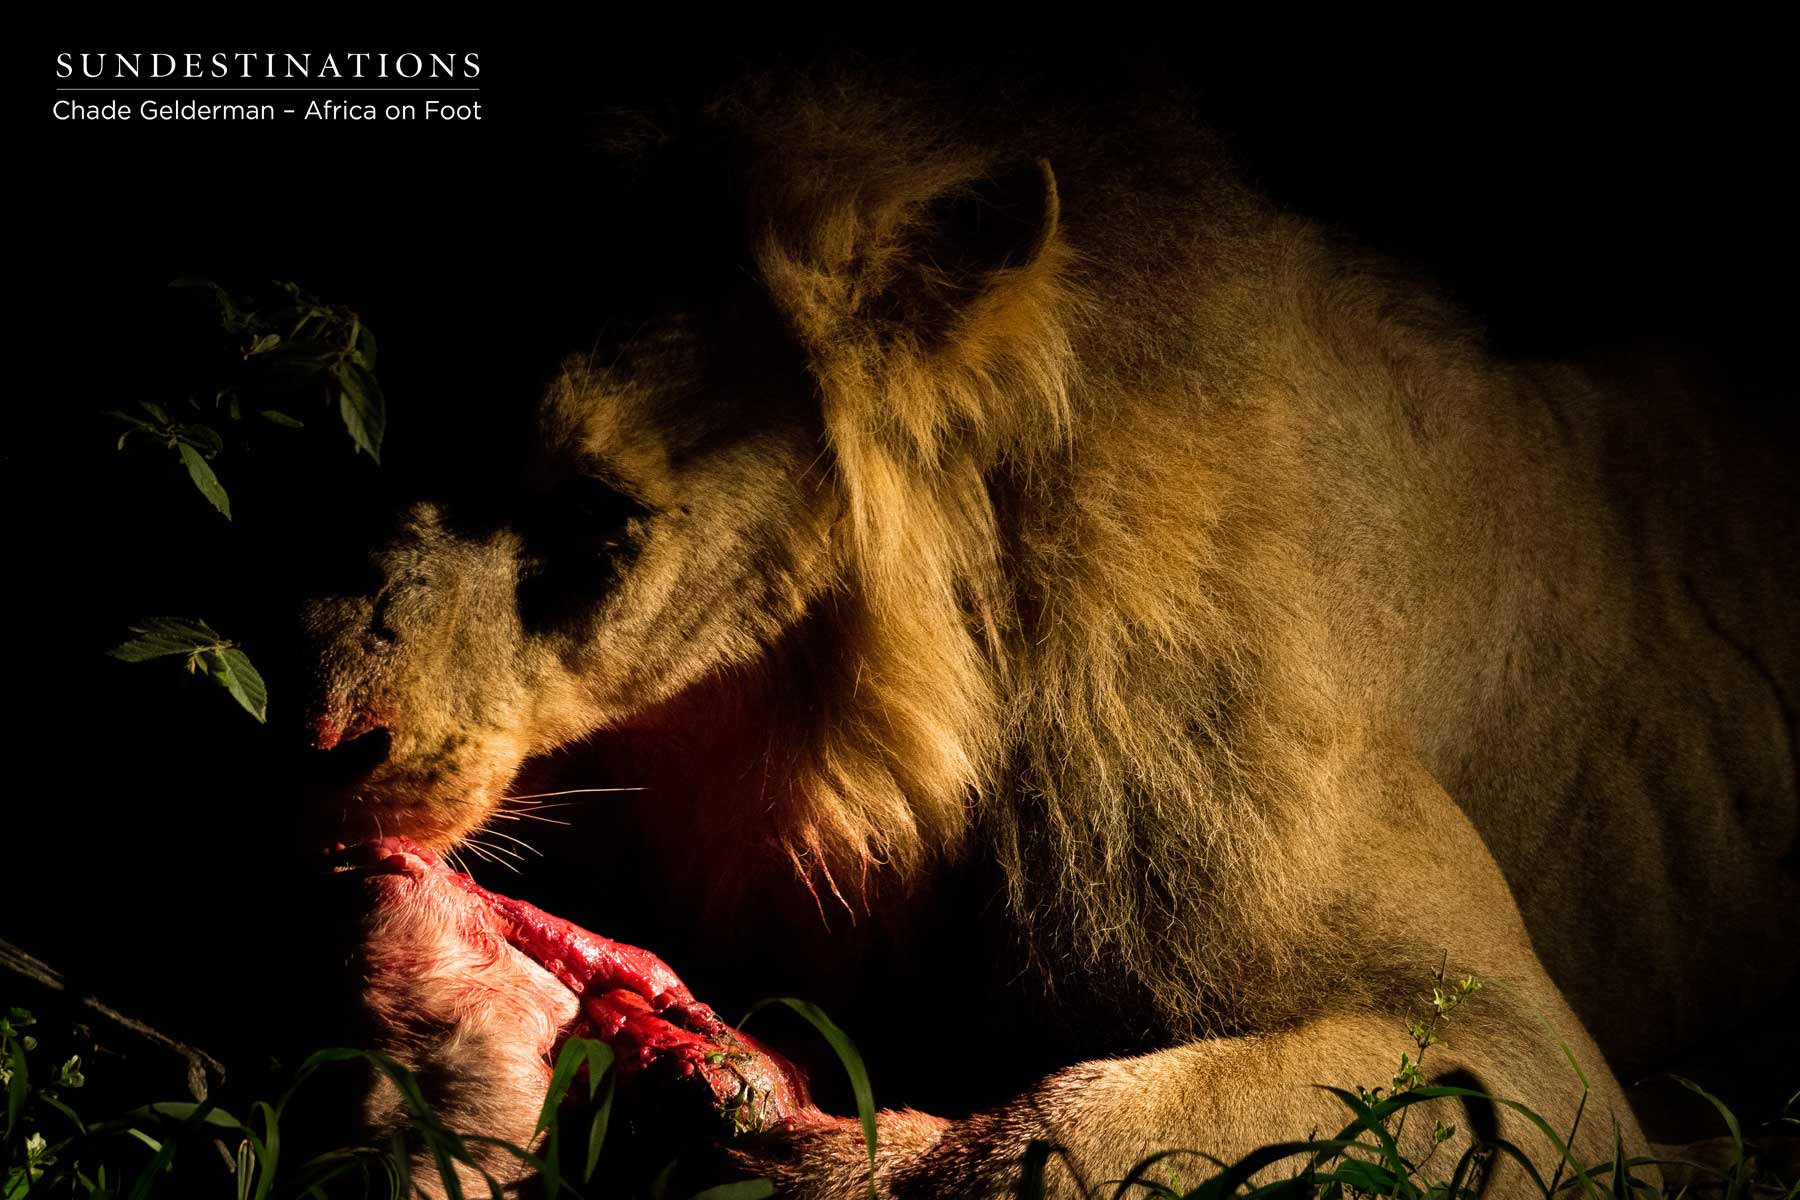 The Beastly Mbiri Male Lions Kill a Kudu Calf in the Klaserie